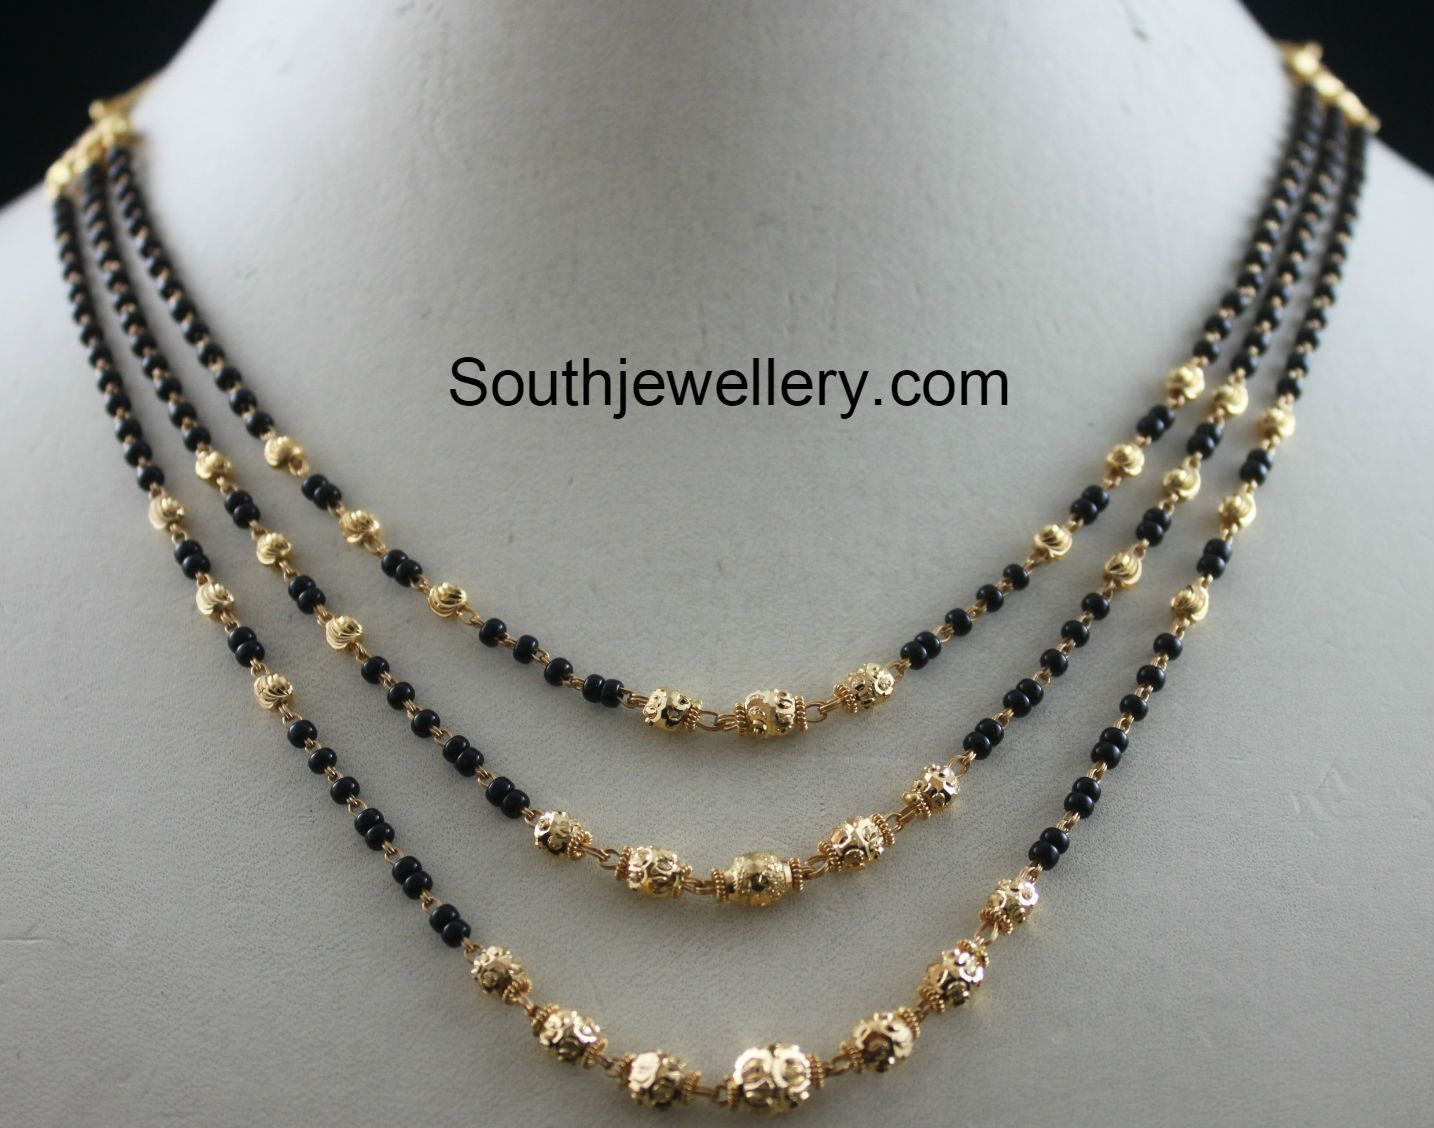 22 carat gold floral designer pendant with multiple beads chain and - Black Beads Chain Latest Jewelry Designs Page 5 Of 19 Jewellery Designs